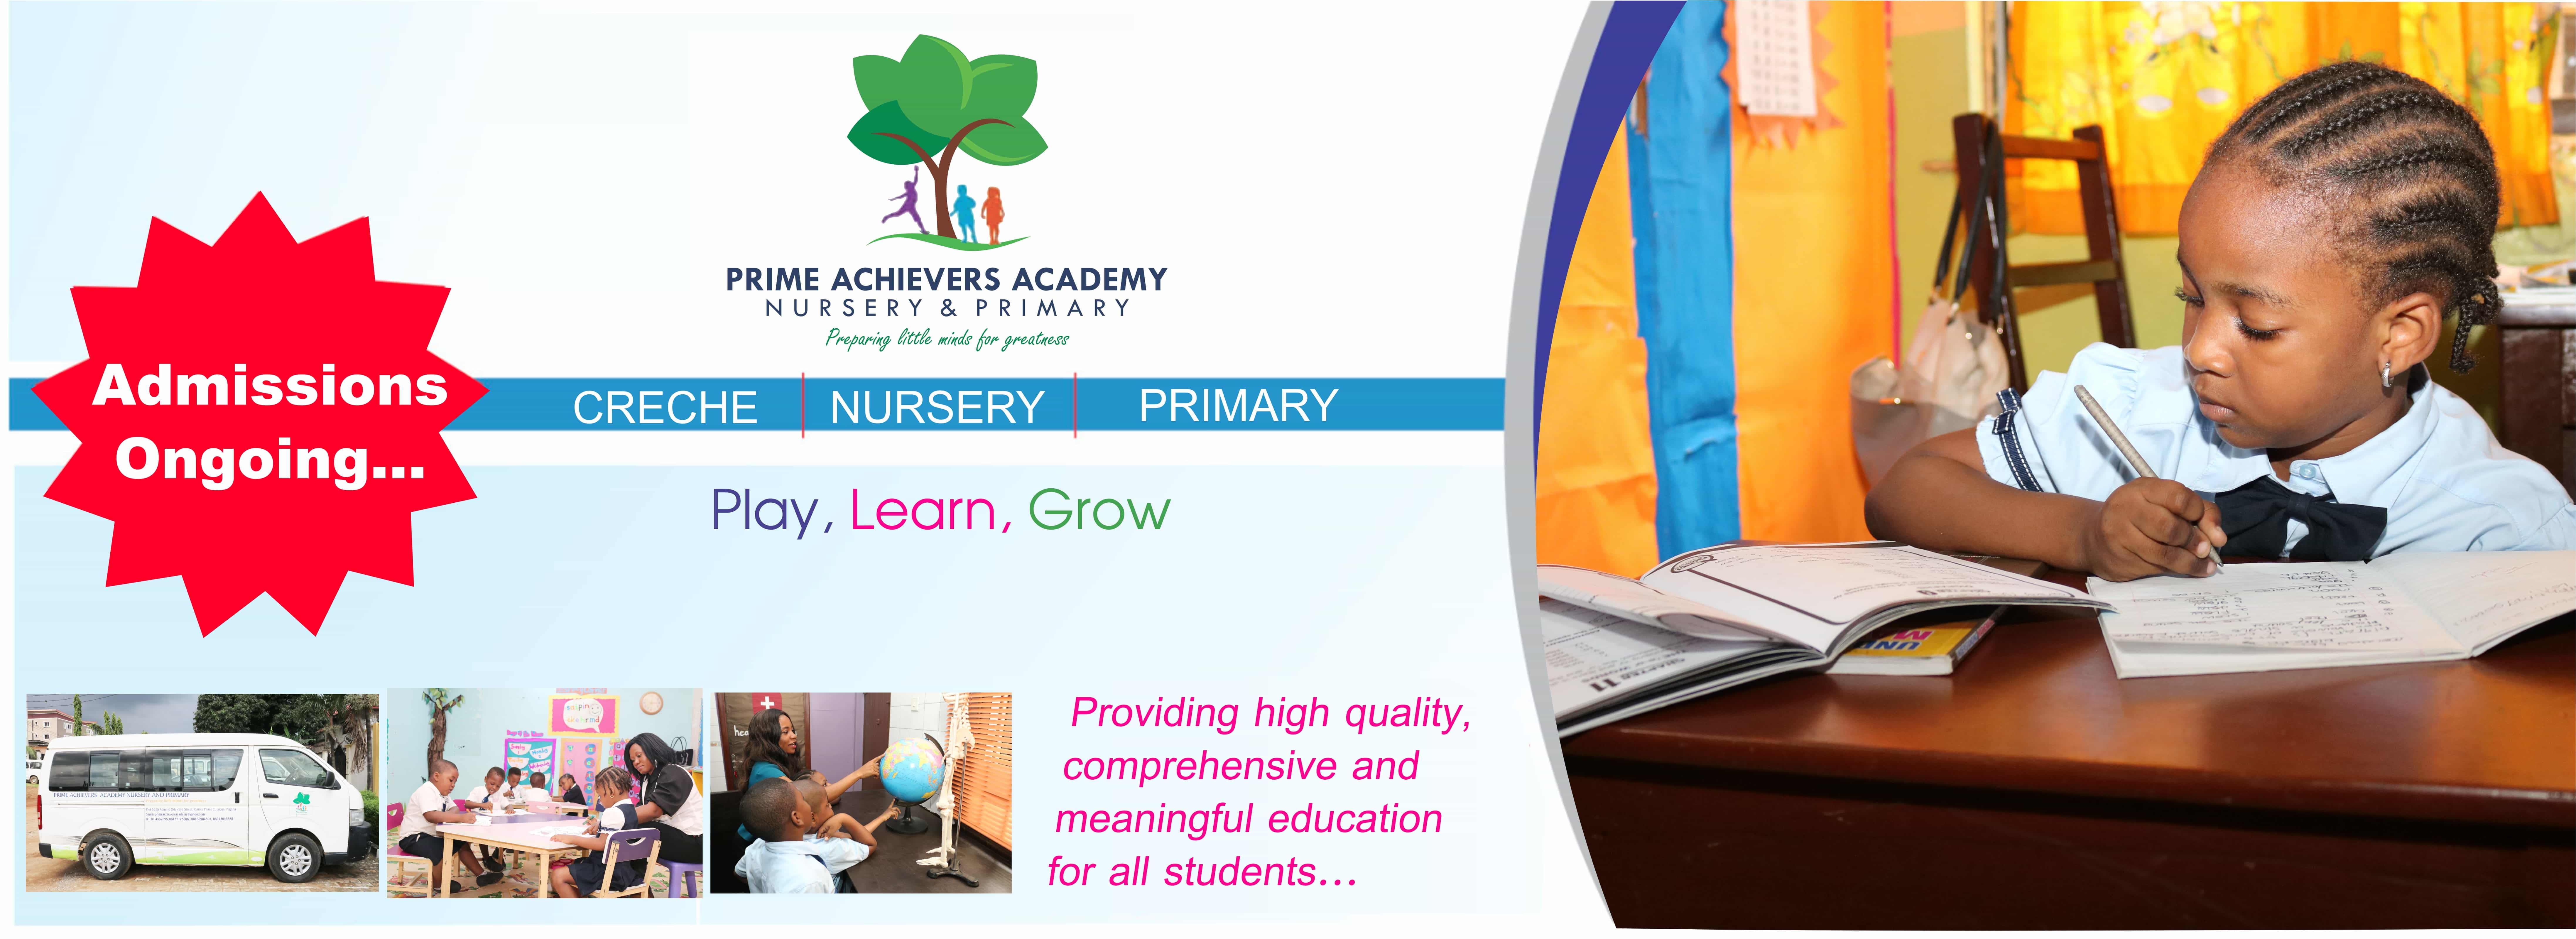 Admission Ongoing